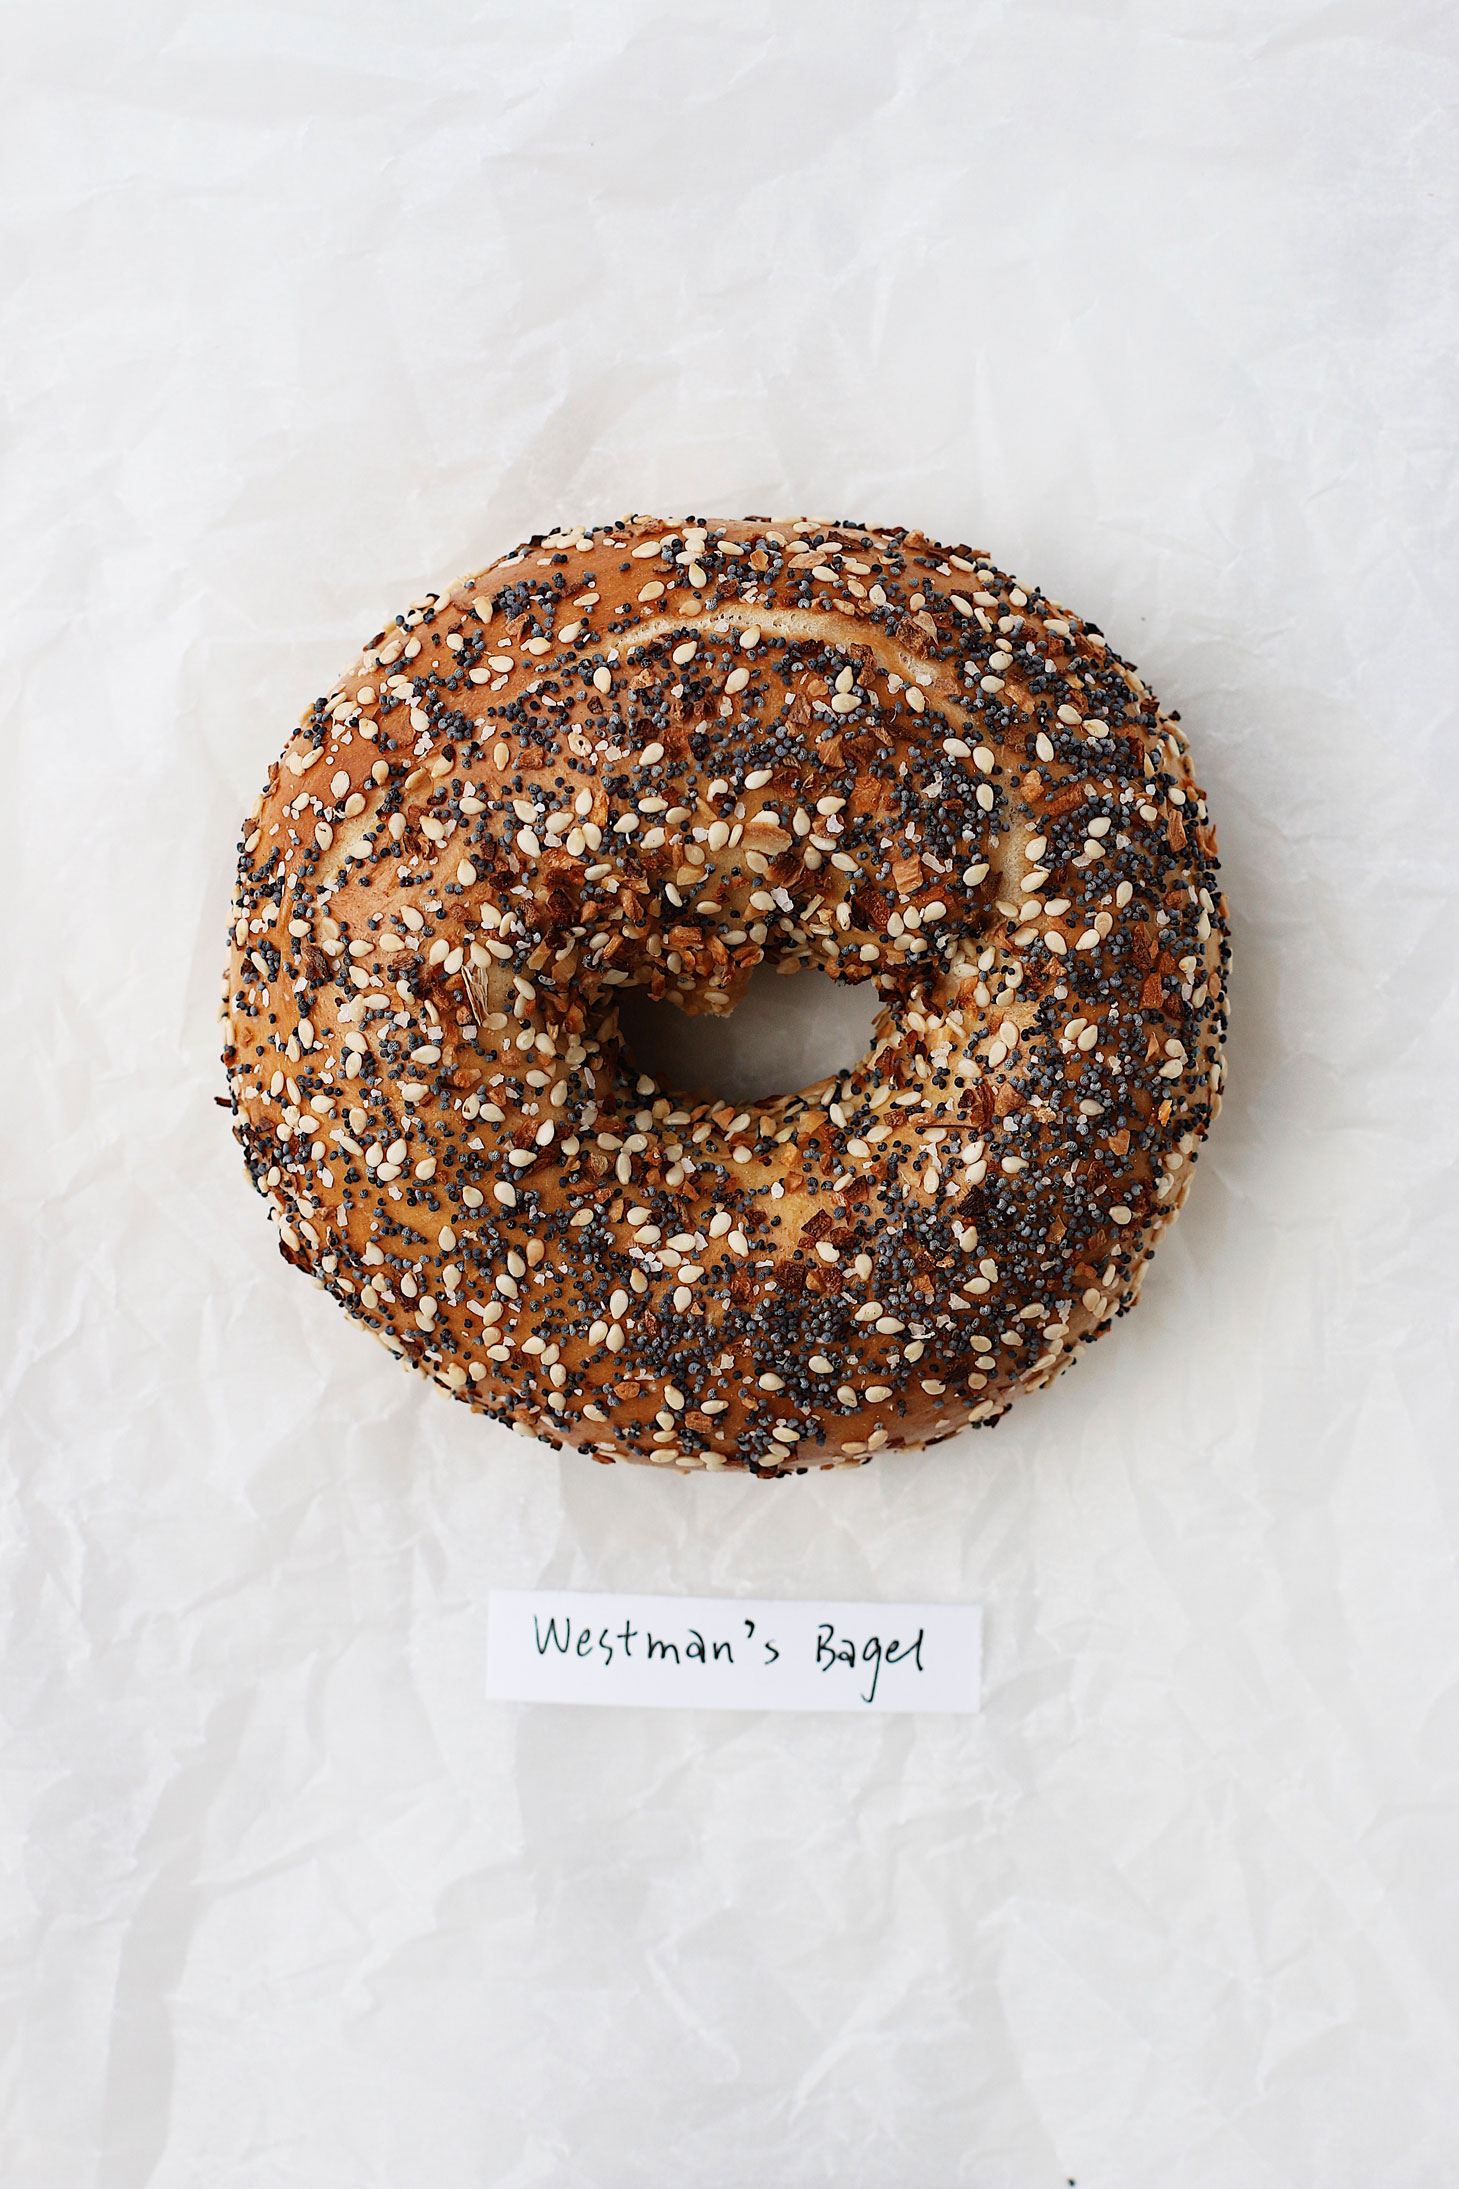 best-bagel-in-seattle-great-bagel-off-westman-everything